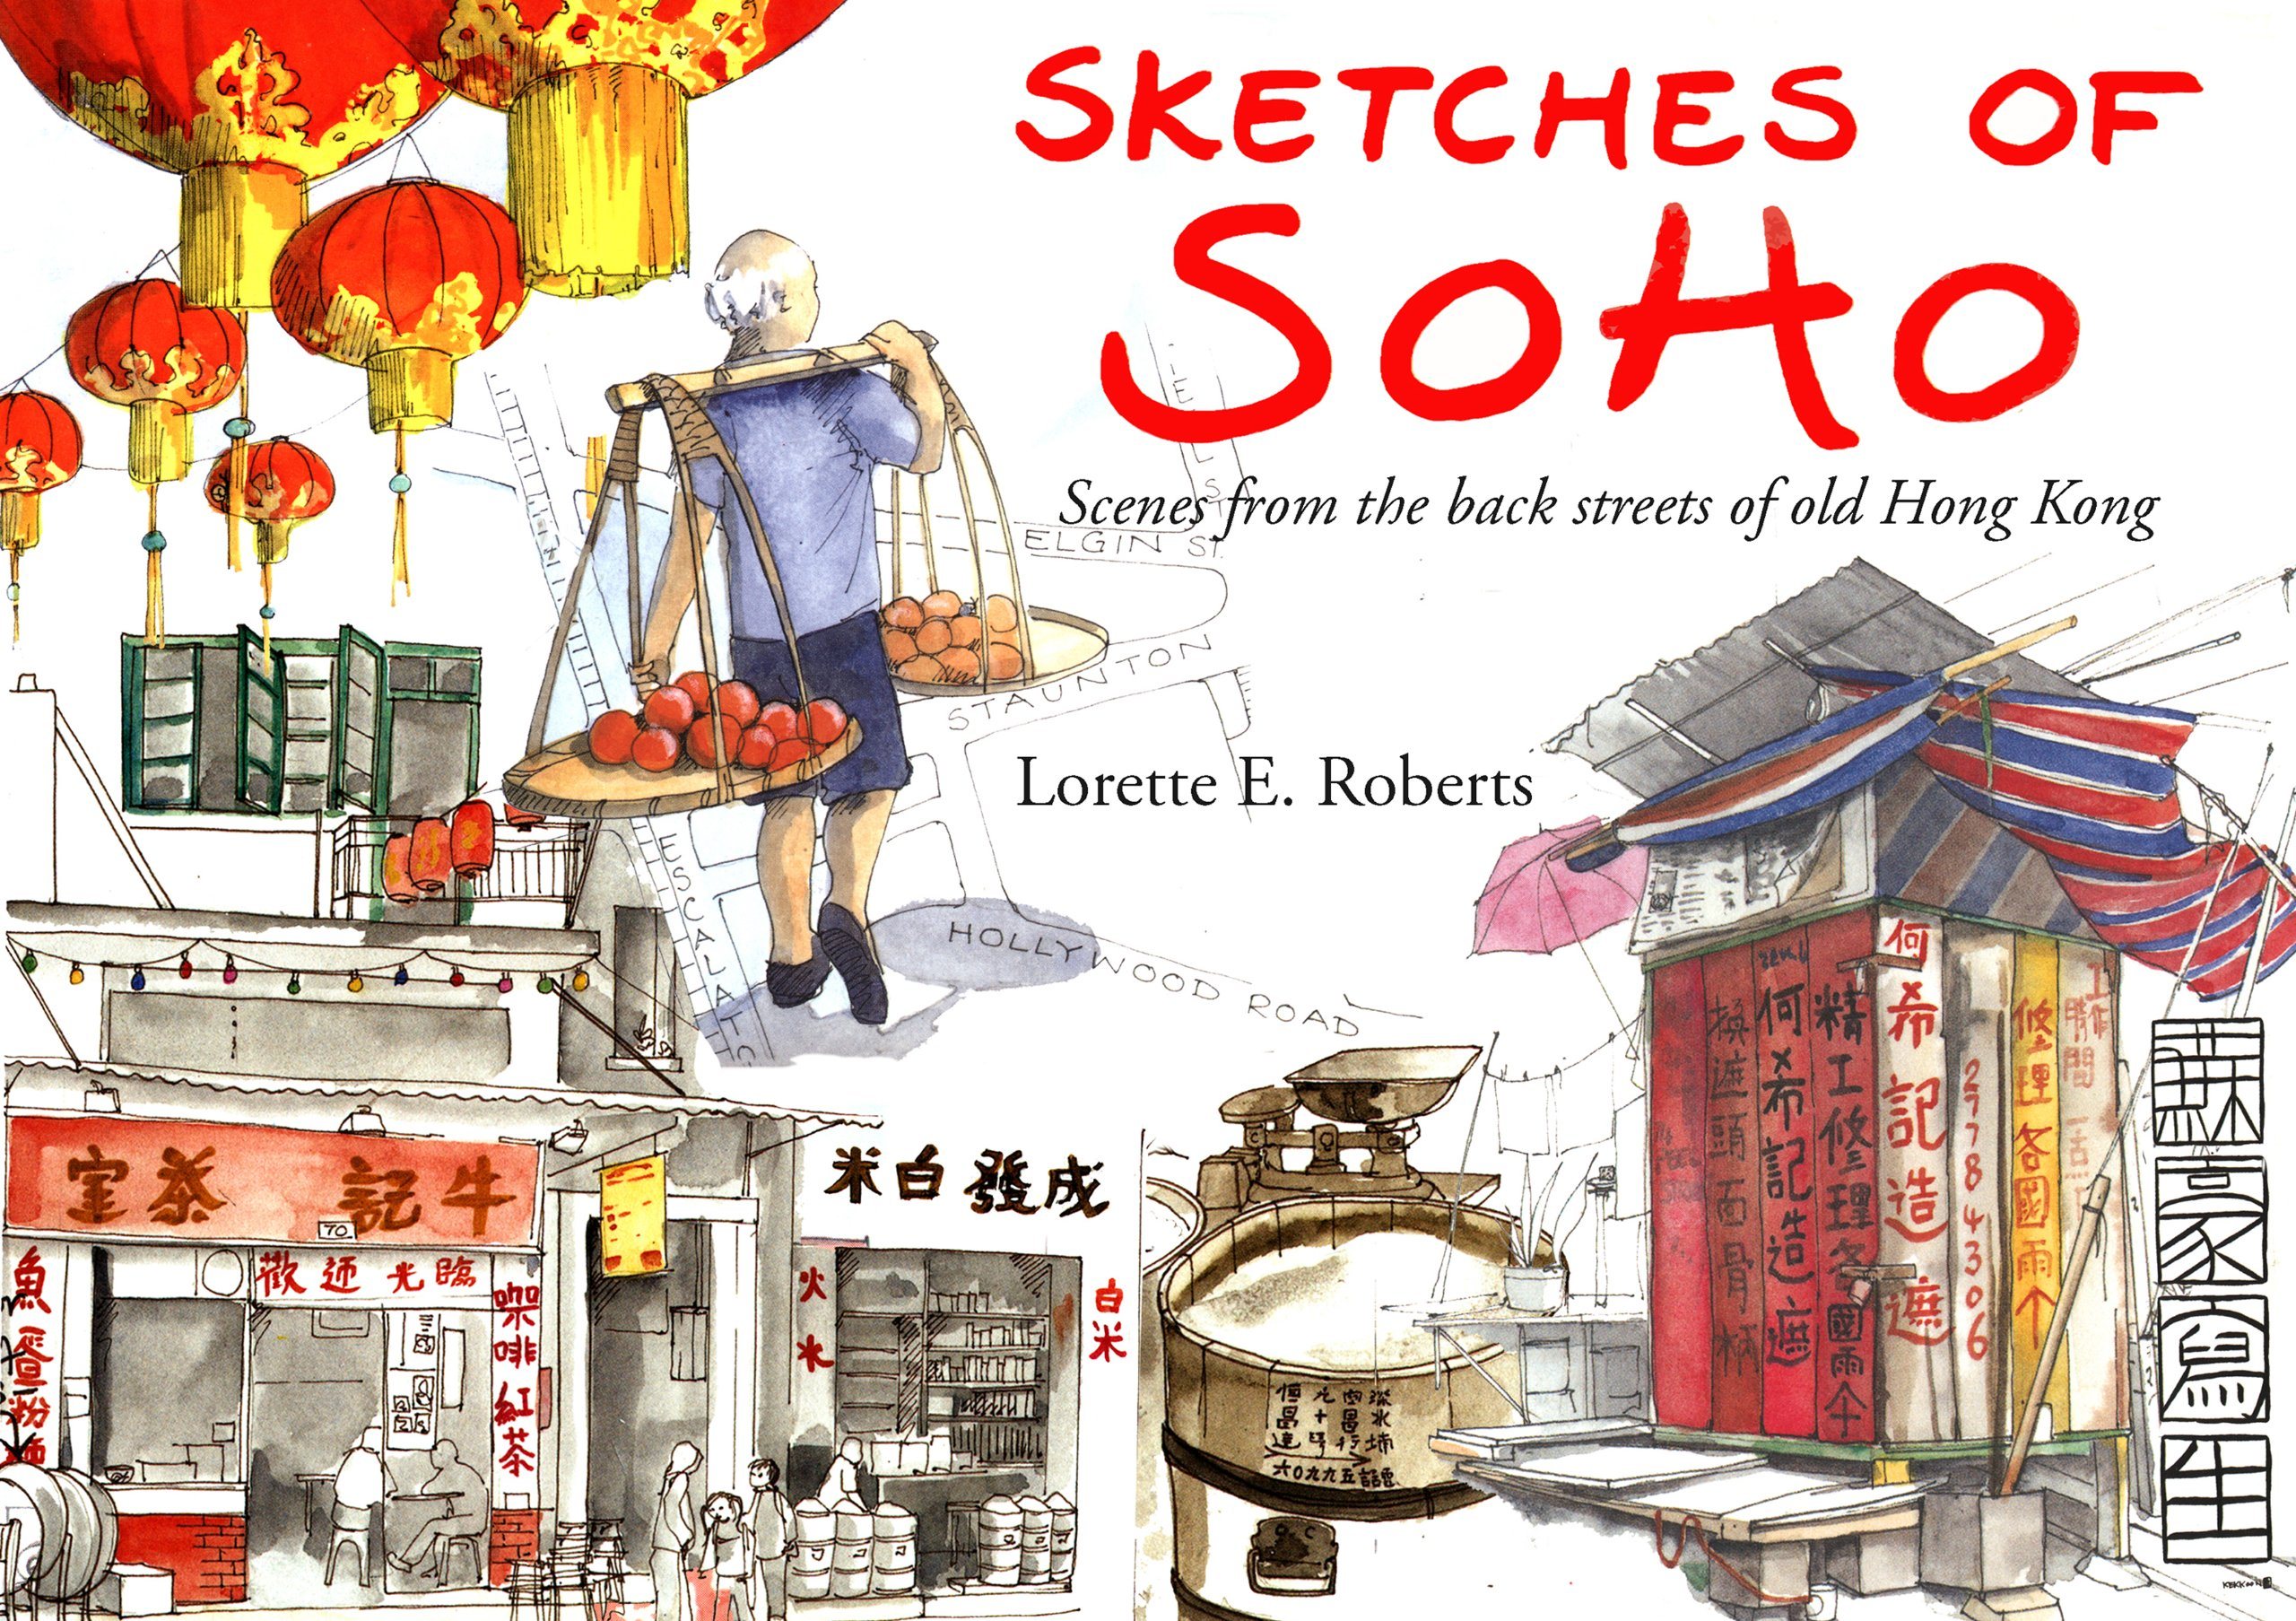 Sketches of Soho: Scenes from the Back Streets of Old Hong Kong